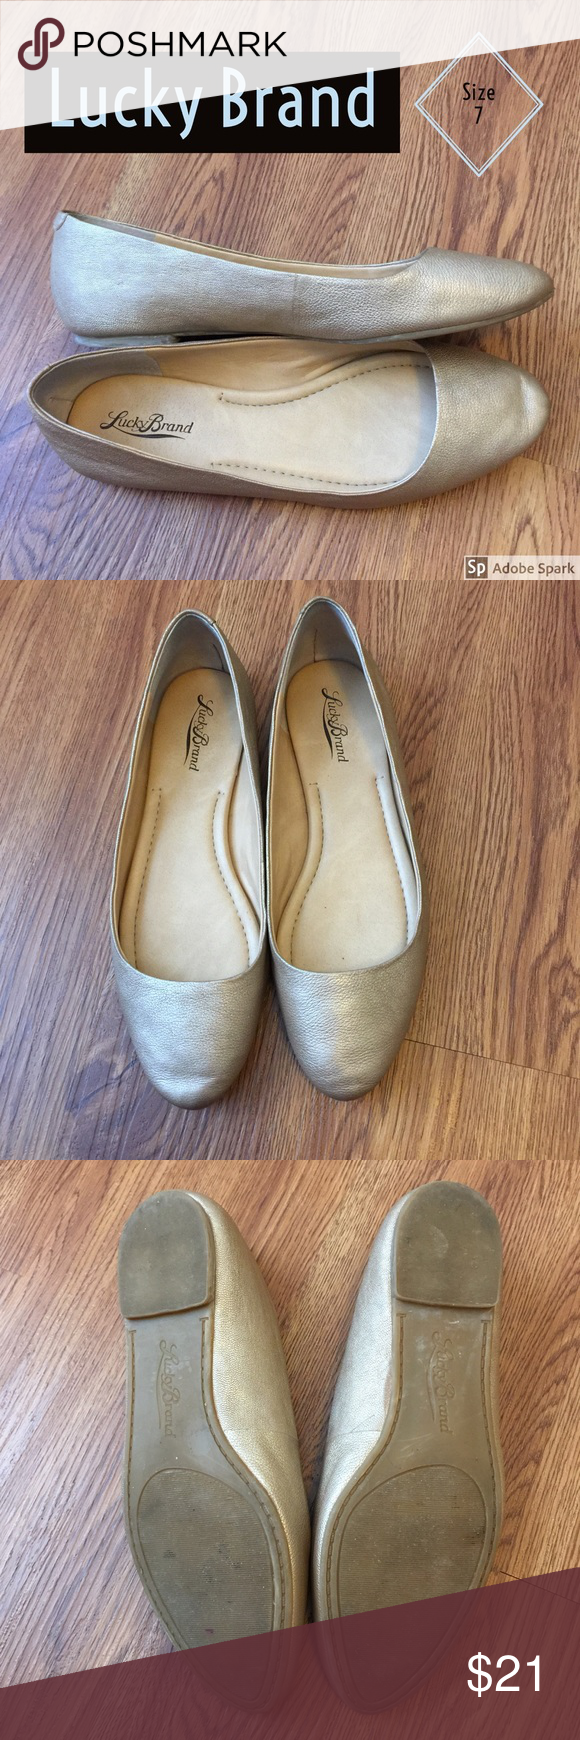 Lucky Brand Gold Flats Size 7 EUC Lucky Brand Gold Flats Size 7, in excellent used condition! The bottoms of these shoes show some wear, but the rest of these shoes are nearly new! Very cute shoes that would go with many outfits! I am happy to answer questions or provide measurements upon request! Lucky Brand Shoes Flats & Loafers